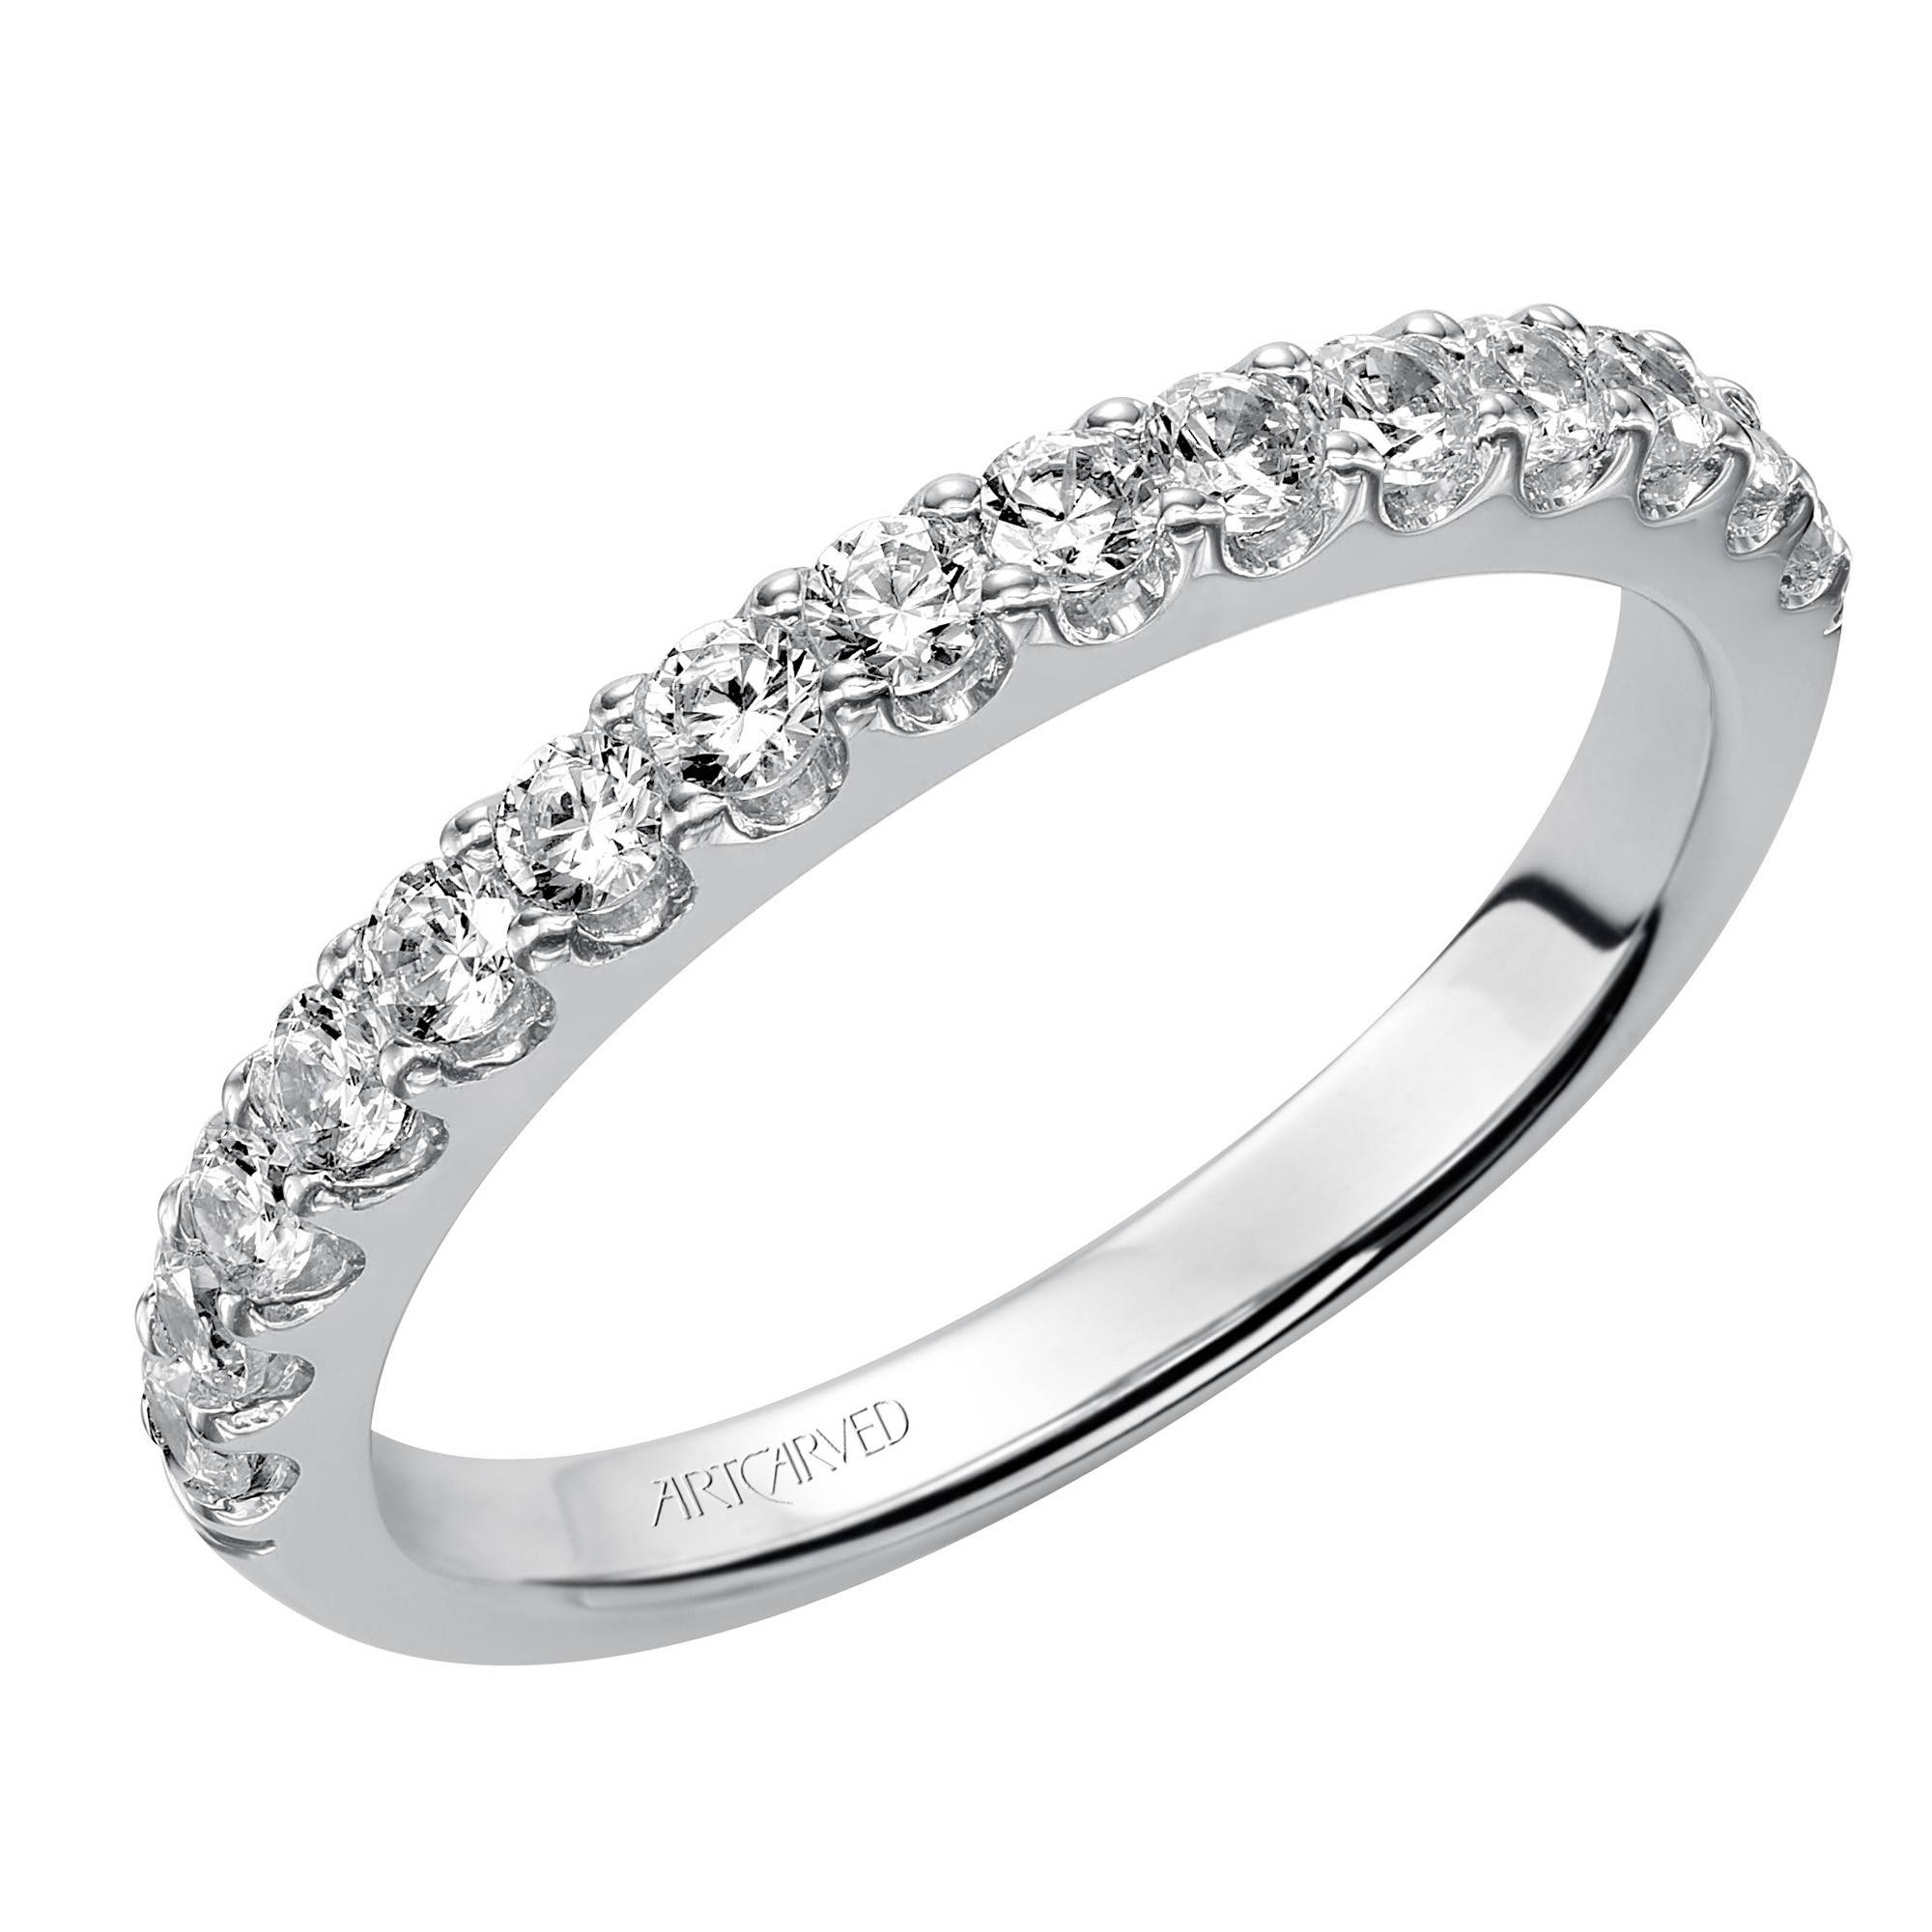 Artcarved Yolanda Diamond Wedding Band In 14Kt White Gold (1/2Ct Tw) Pertaining To Carved Wedding Bands (View 6 of 15)